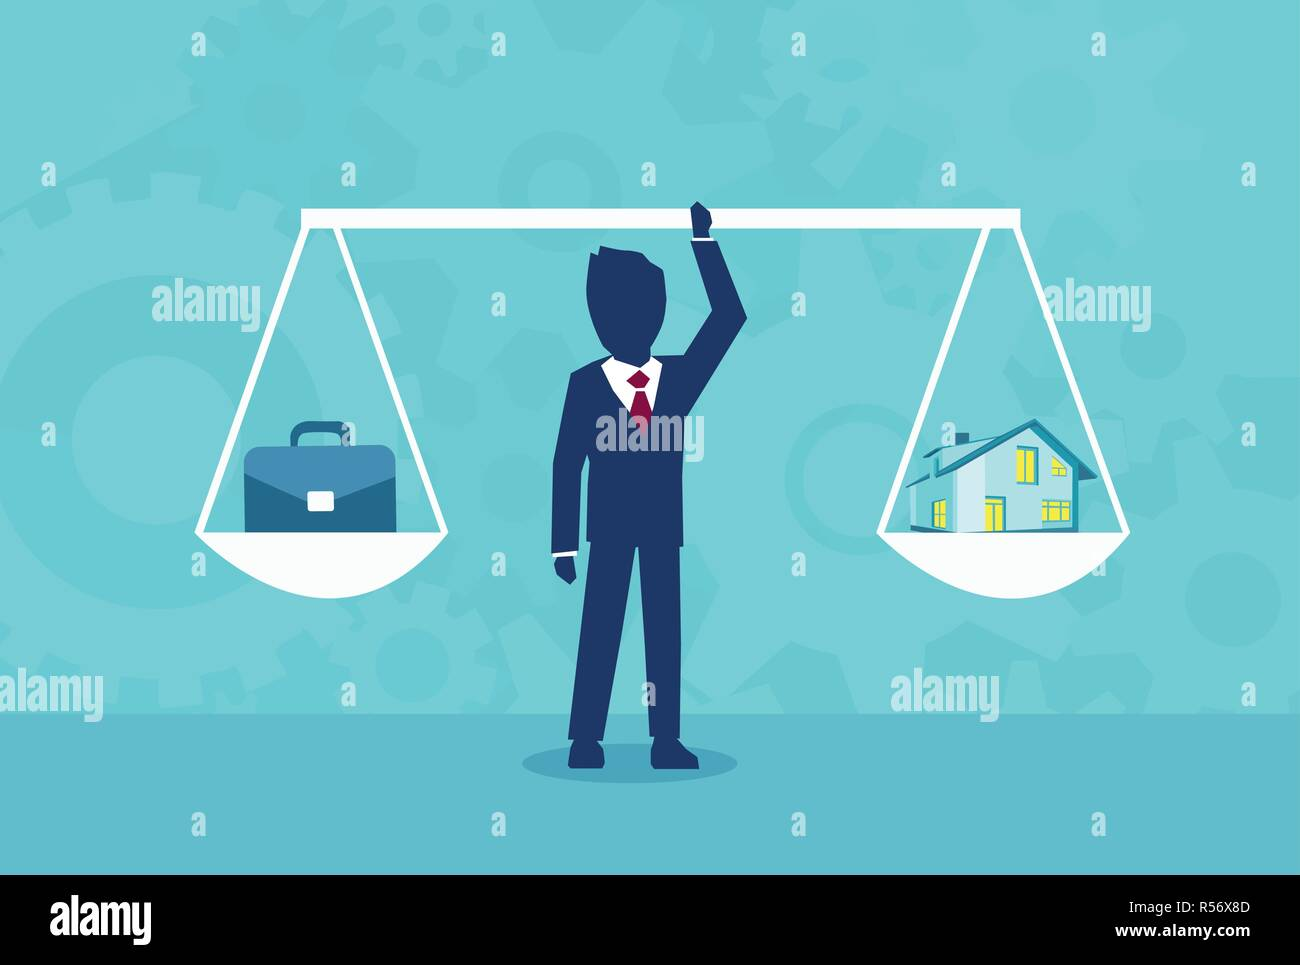 Graphic design of businessman holding scales with home and work in balance on blue background - Stock Image